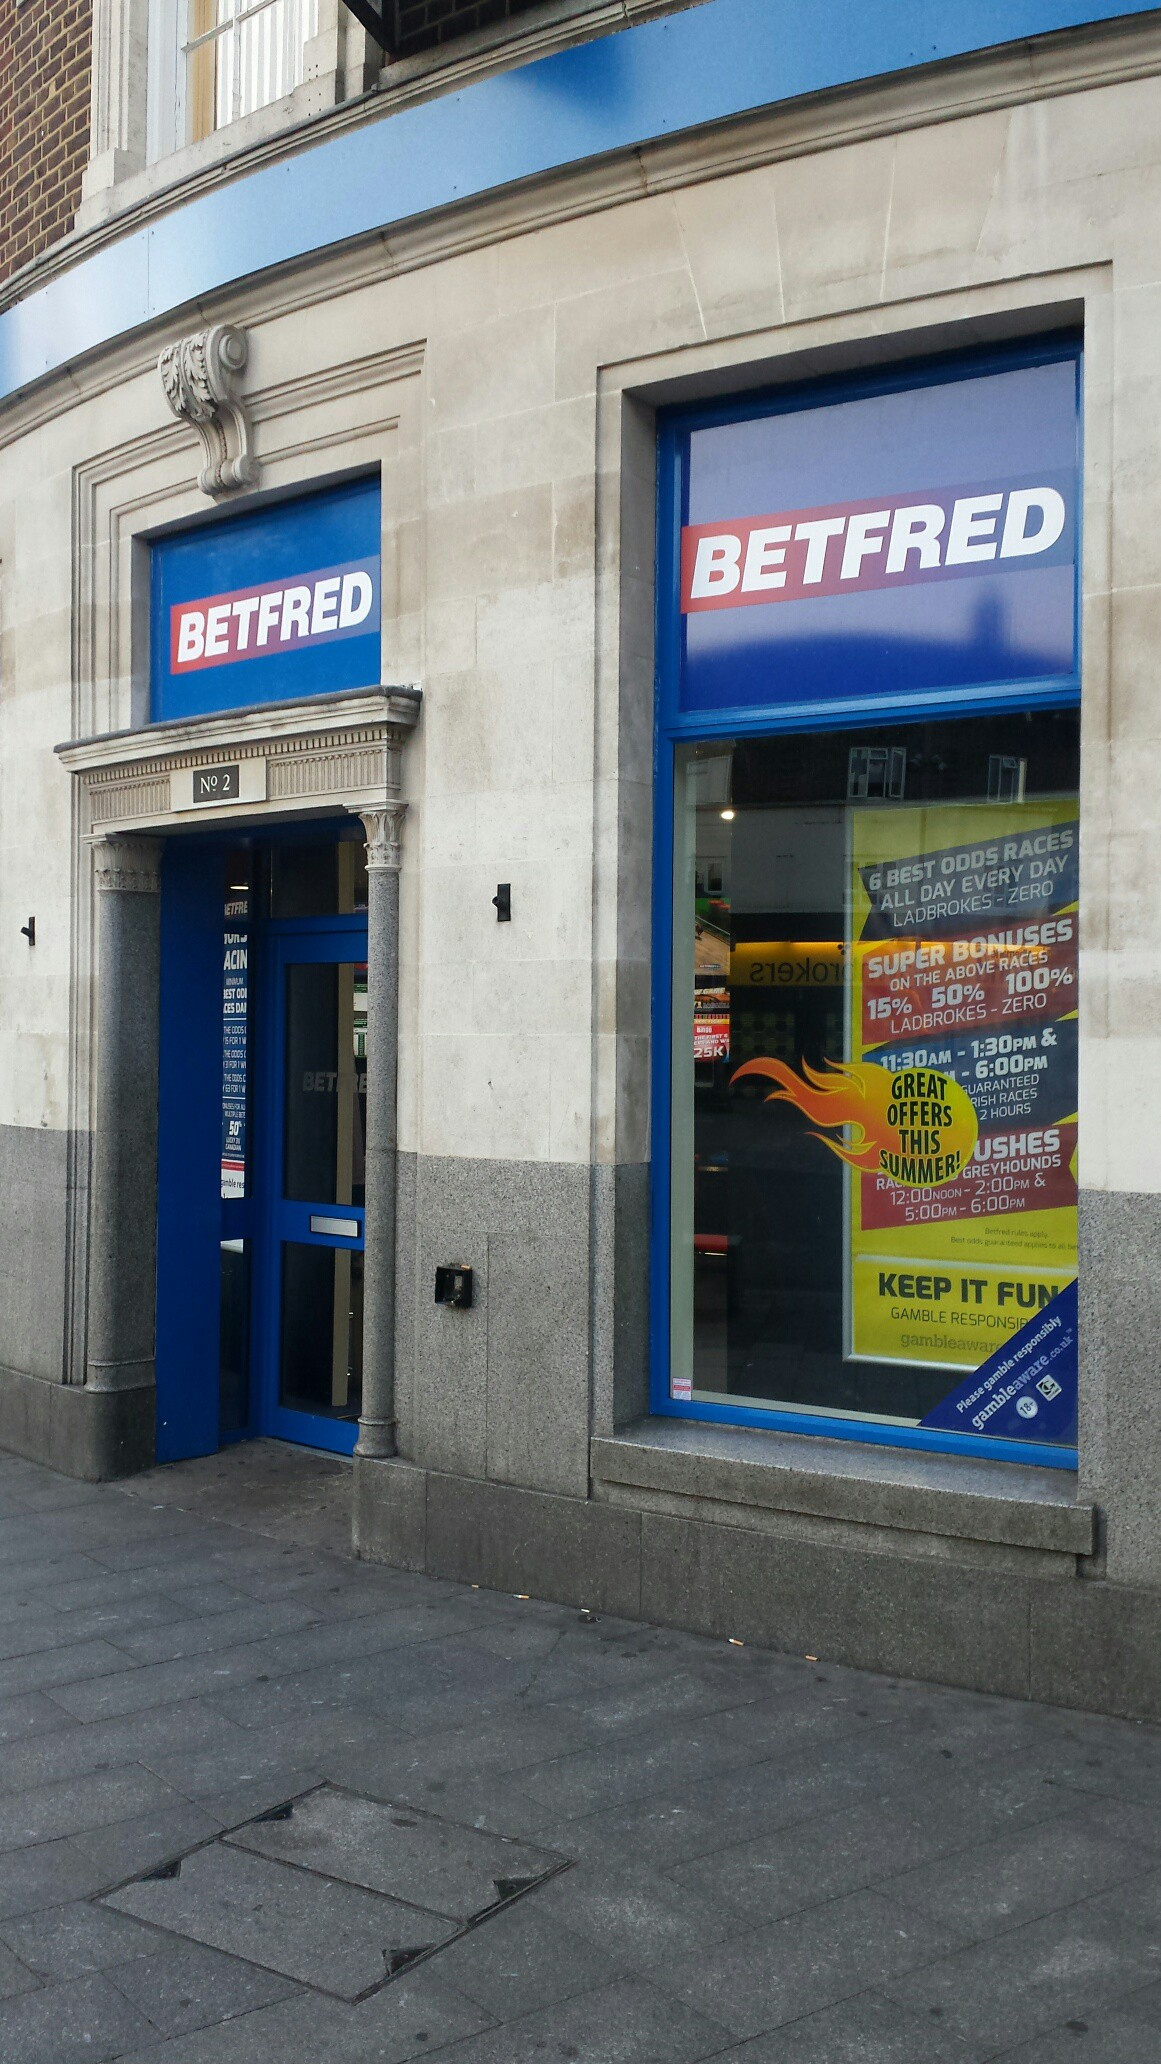 Betting shops on the high street world cup 2021 qualifiers betting tips